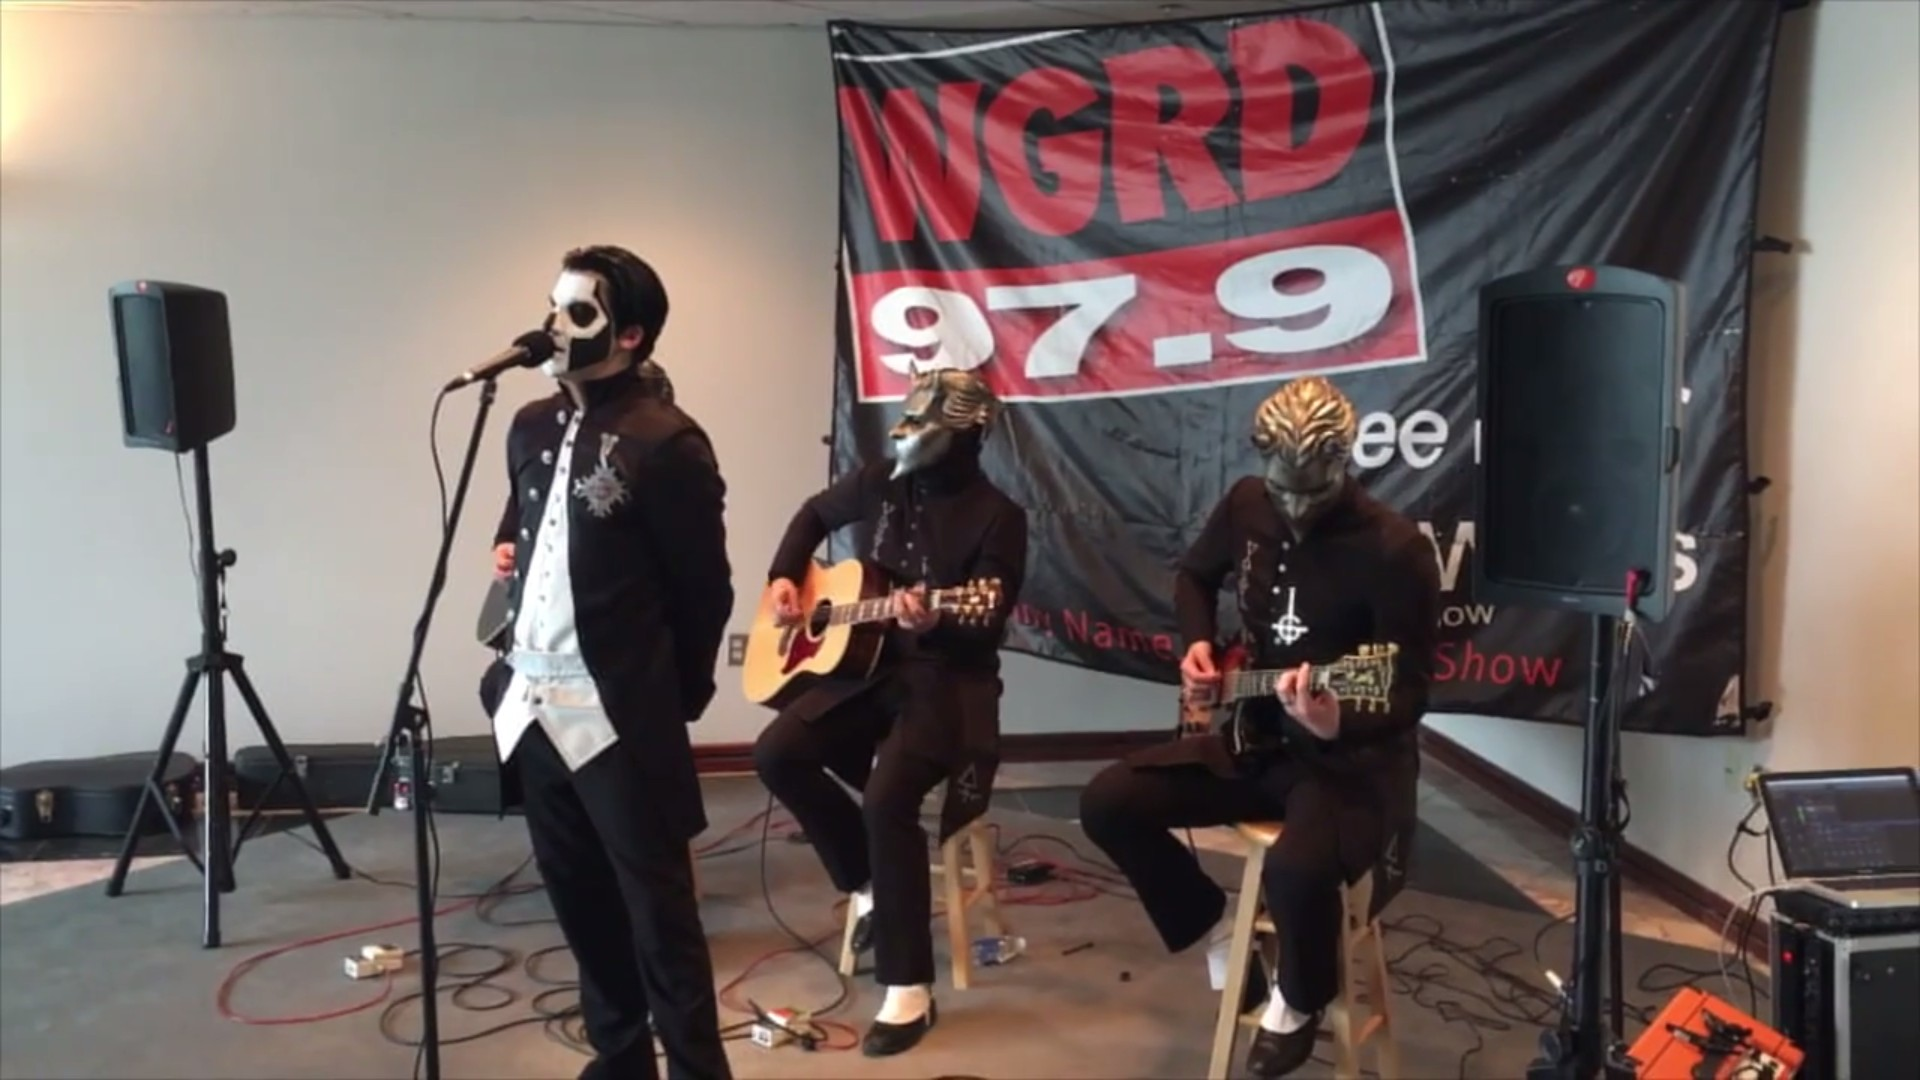 Ghost Performs 'Cirice', 'Jigolo Har Megiddo', And 'If You Have Ghosts' (Acoustic) At Grand Rapids Rock Station